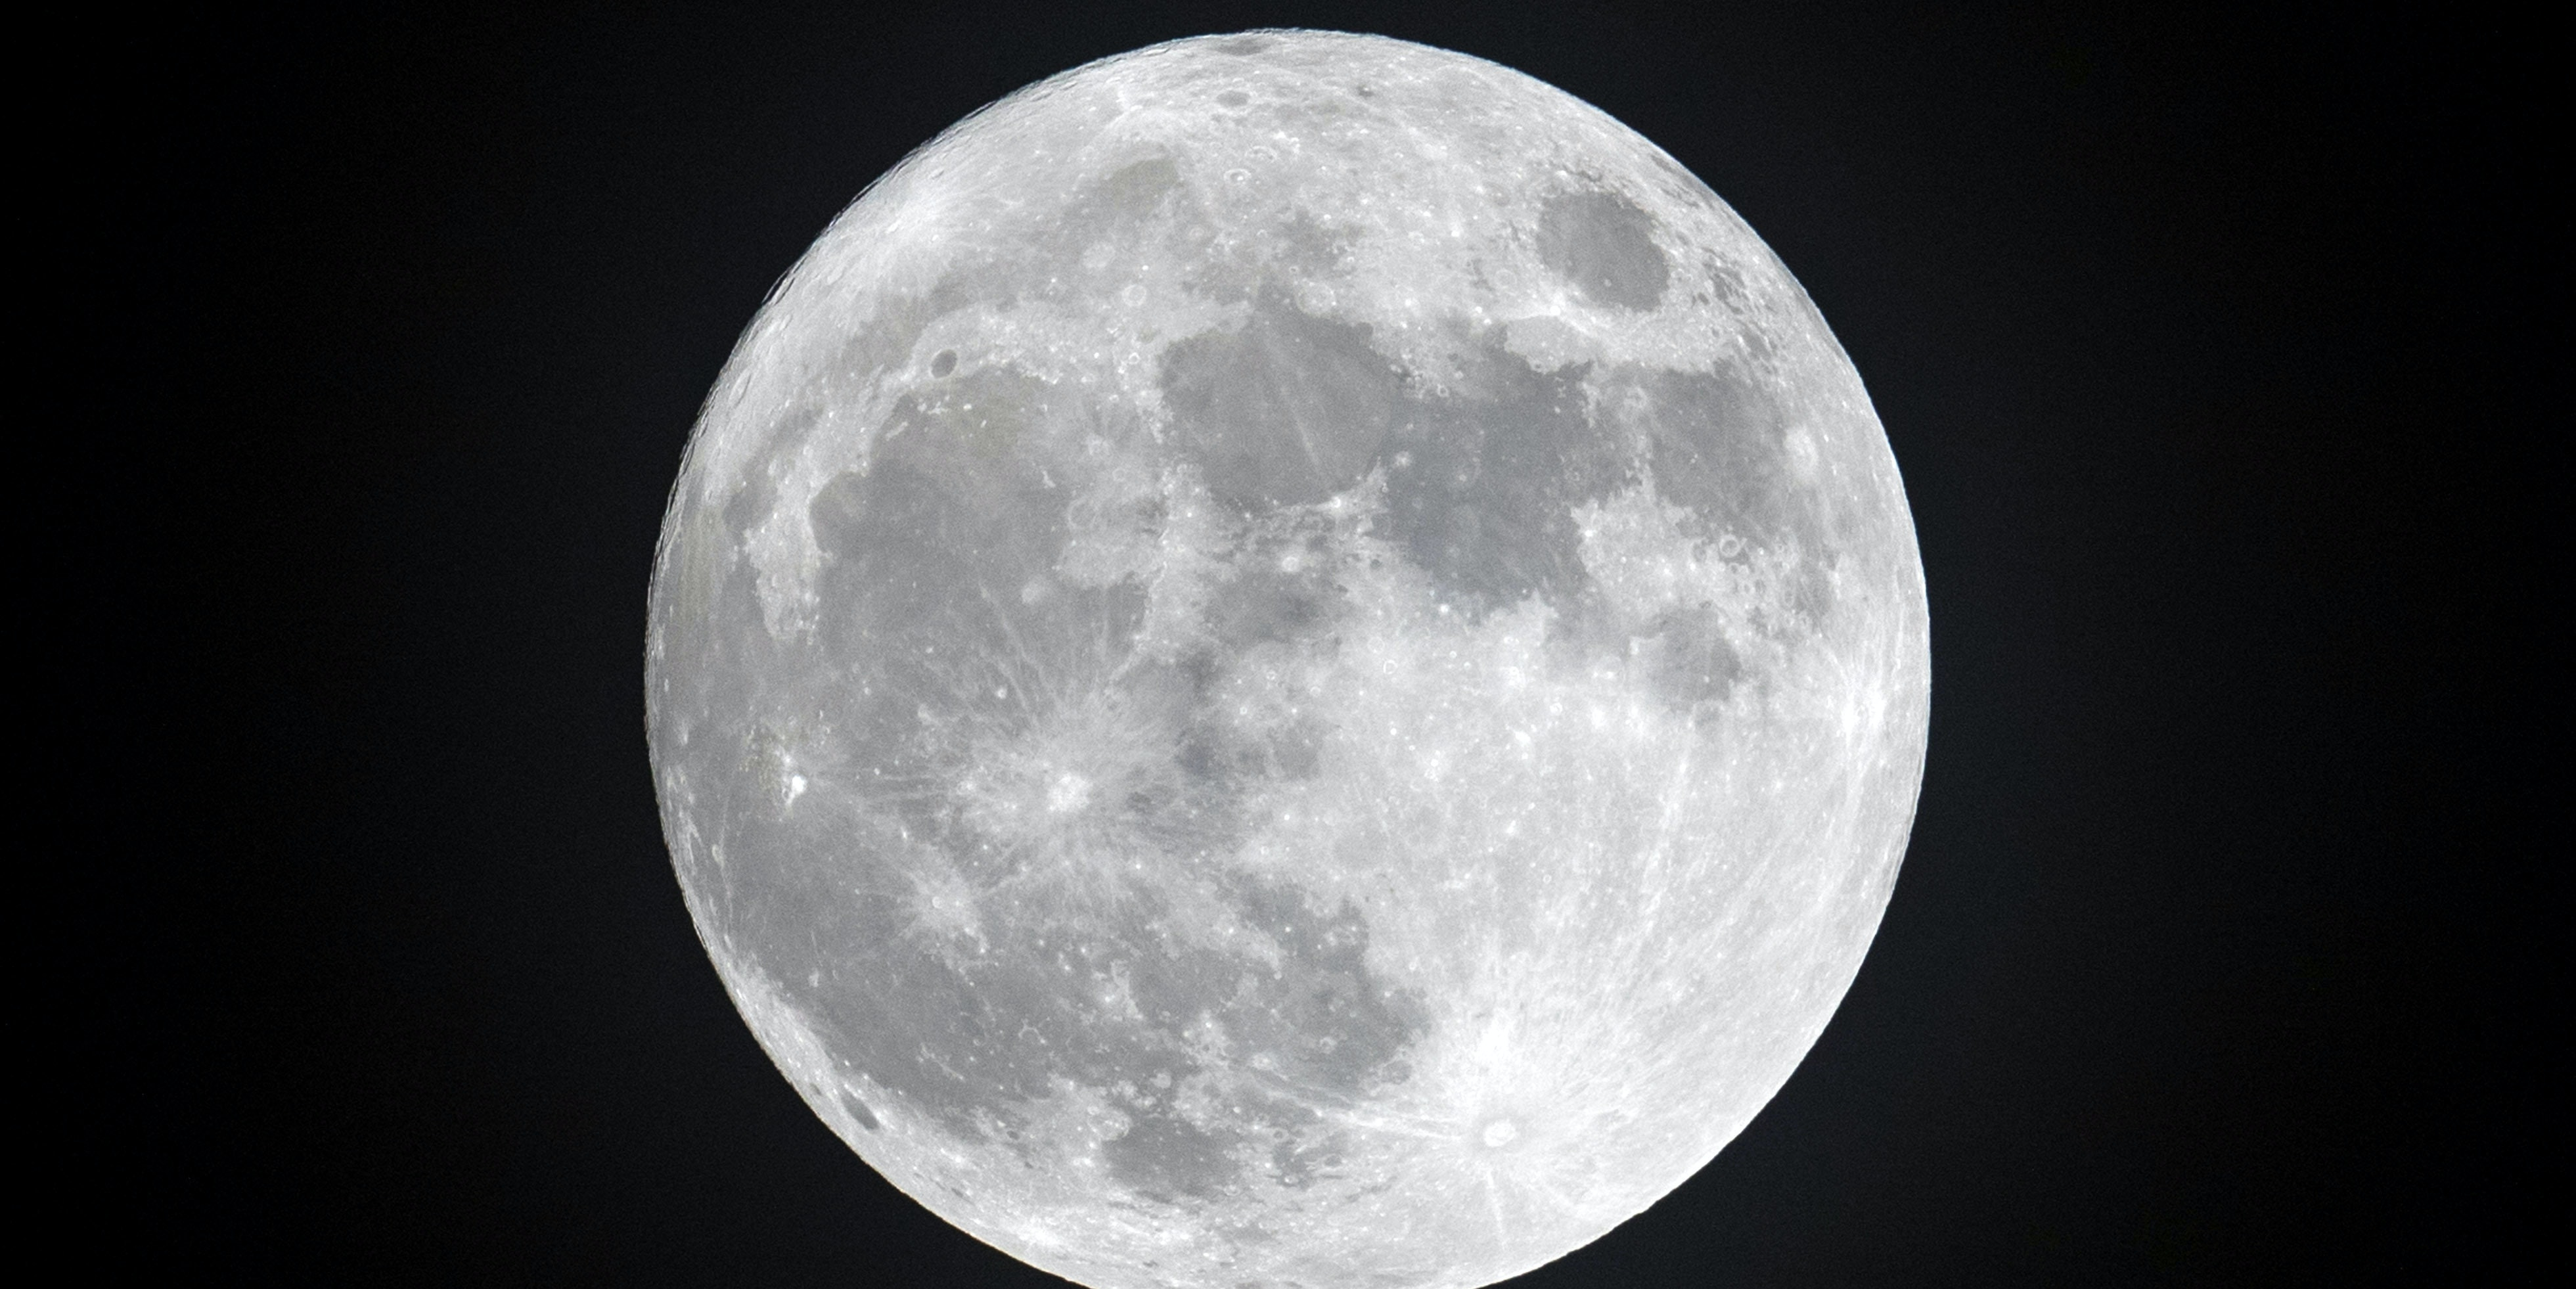 Clouds clear to allow a view of the final full moon of the year, a so-called 'Cold Moon', as it appears behind lights illuminating Penzance seafront on December 13, 2016 in Cornwall, England. The last full moon of the year was also the final supermoon of 2016. The natural phenomenon occurs when the perigee (closest approach by the Moon to Earth) coincides with it being full (completely illuminated by the Sun).